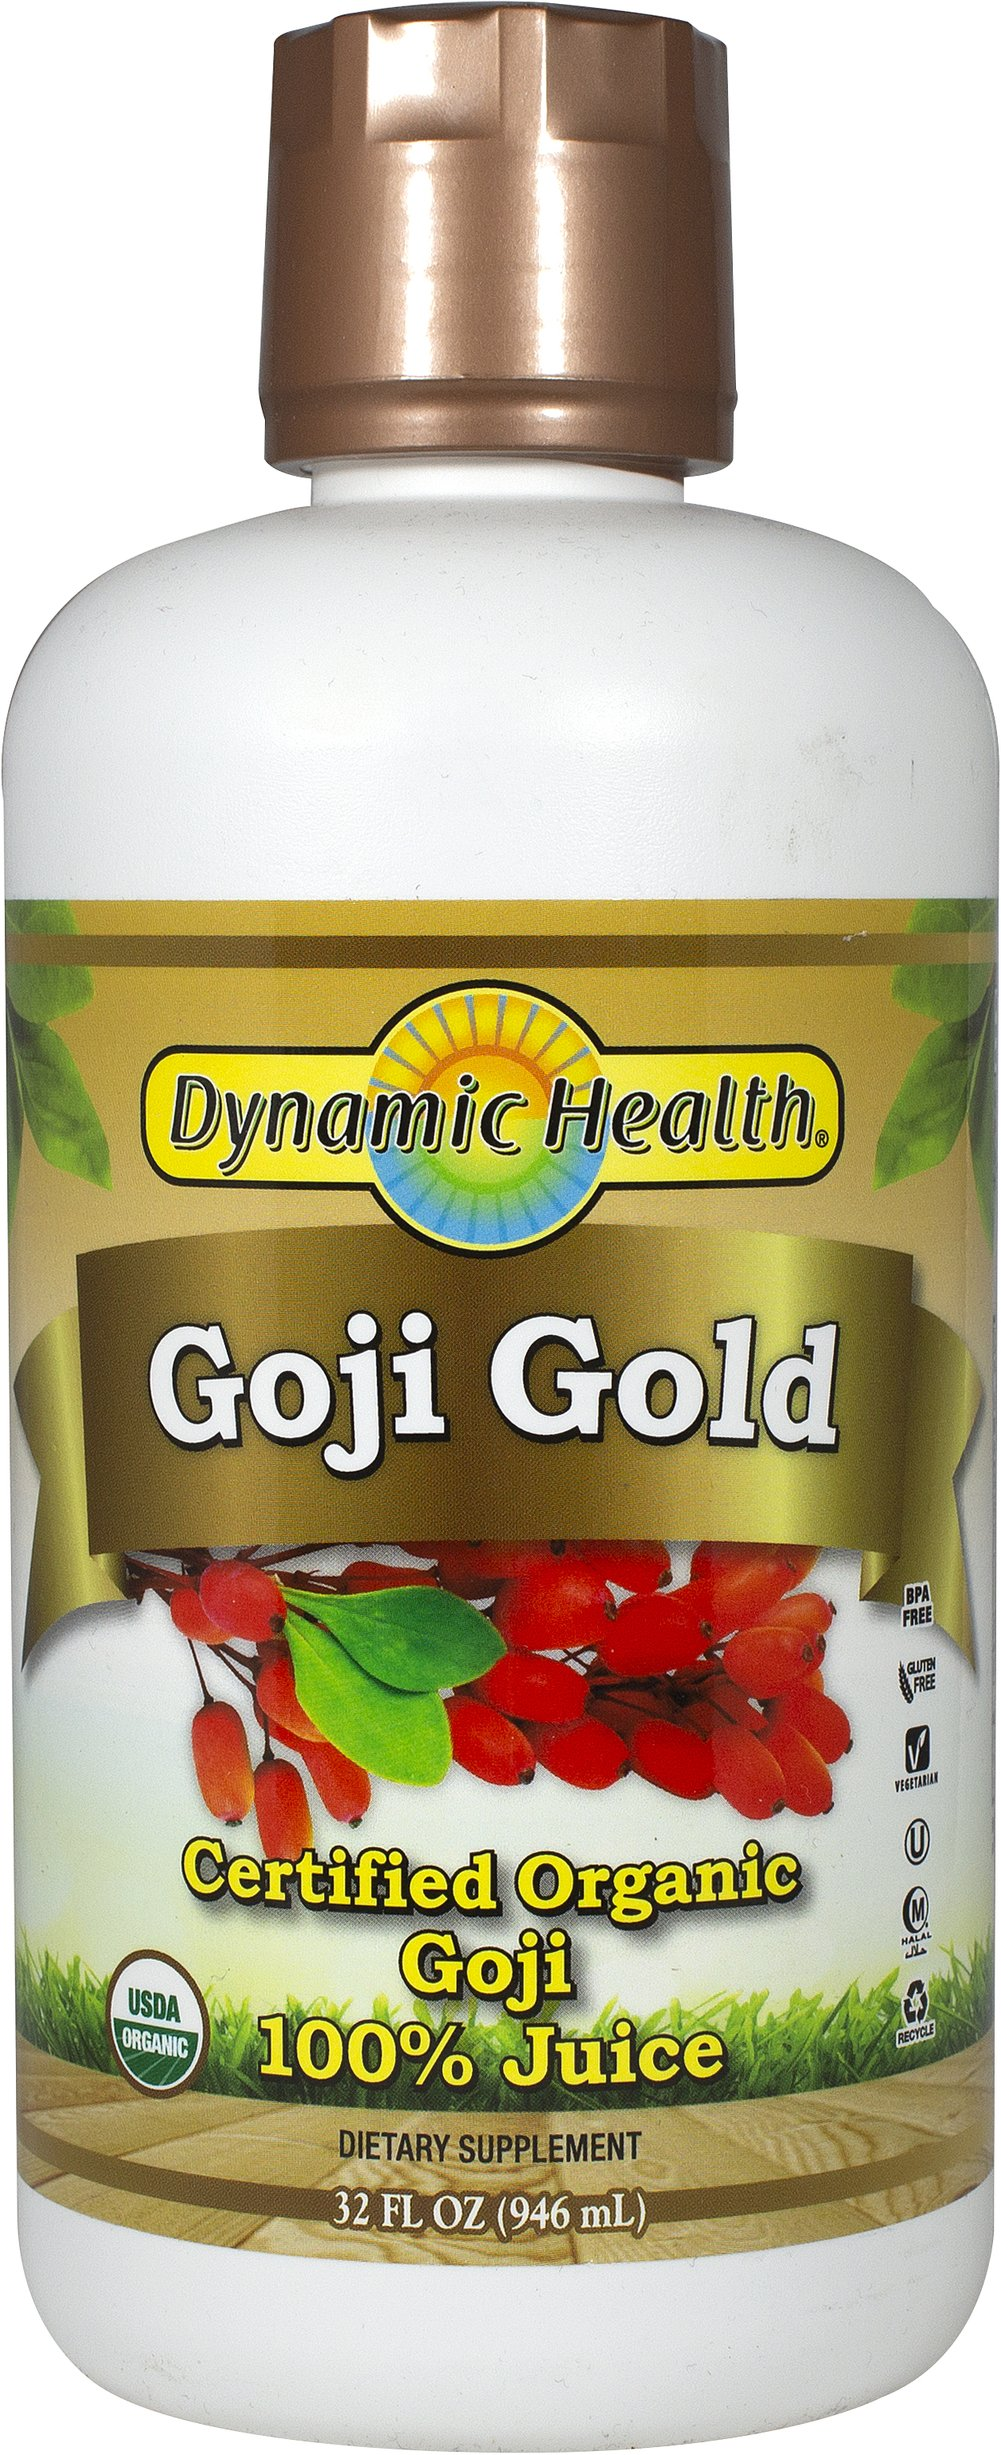 Organic Goji Gold 100% Pure Juice <p><strong>From the Manufacturer's Label: </strong></p><p>The berries of the Goji plant have been treasured for centuries by the Himalayan people. </p><p>These berries flourish in the tranquil valleys that are naturally protected by the Majestic Himalayan Mountains. </p><p>- GOJI GOLD™ is rich in naturally occurring anti-oxidant vitamins & minerals including: zinc, calcium, germanium, selenium, ph